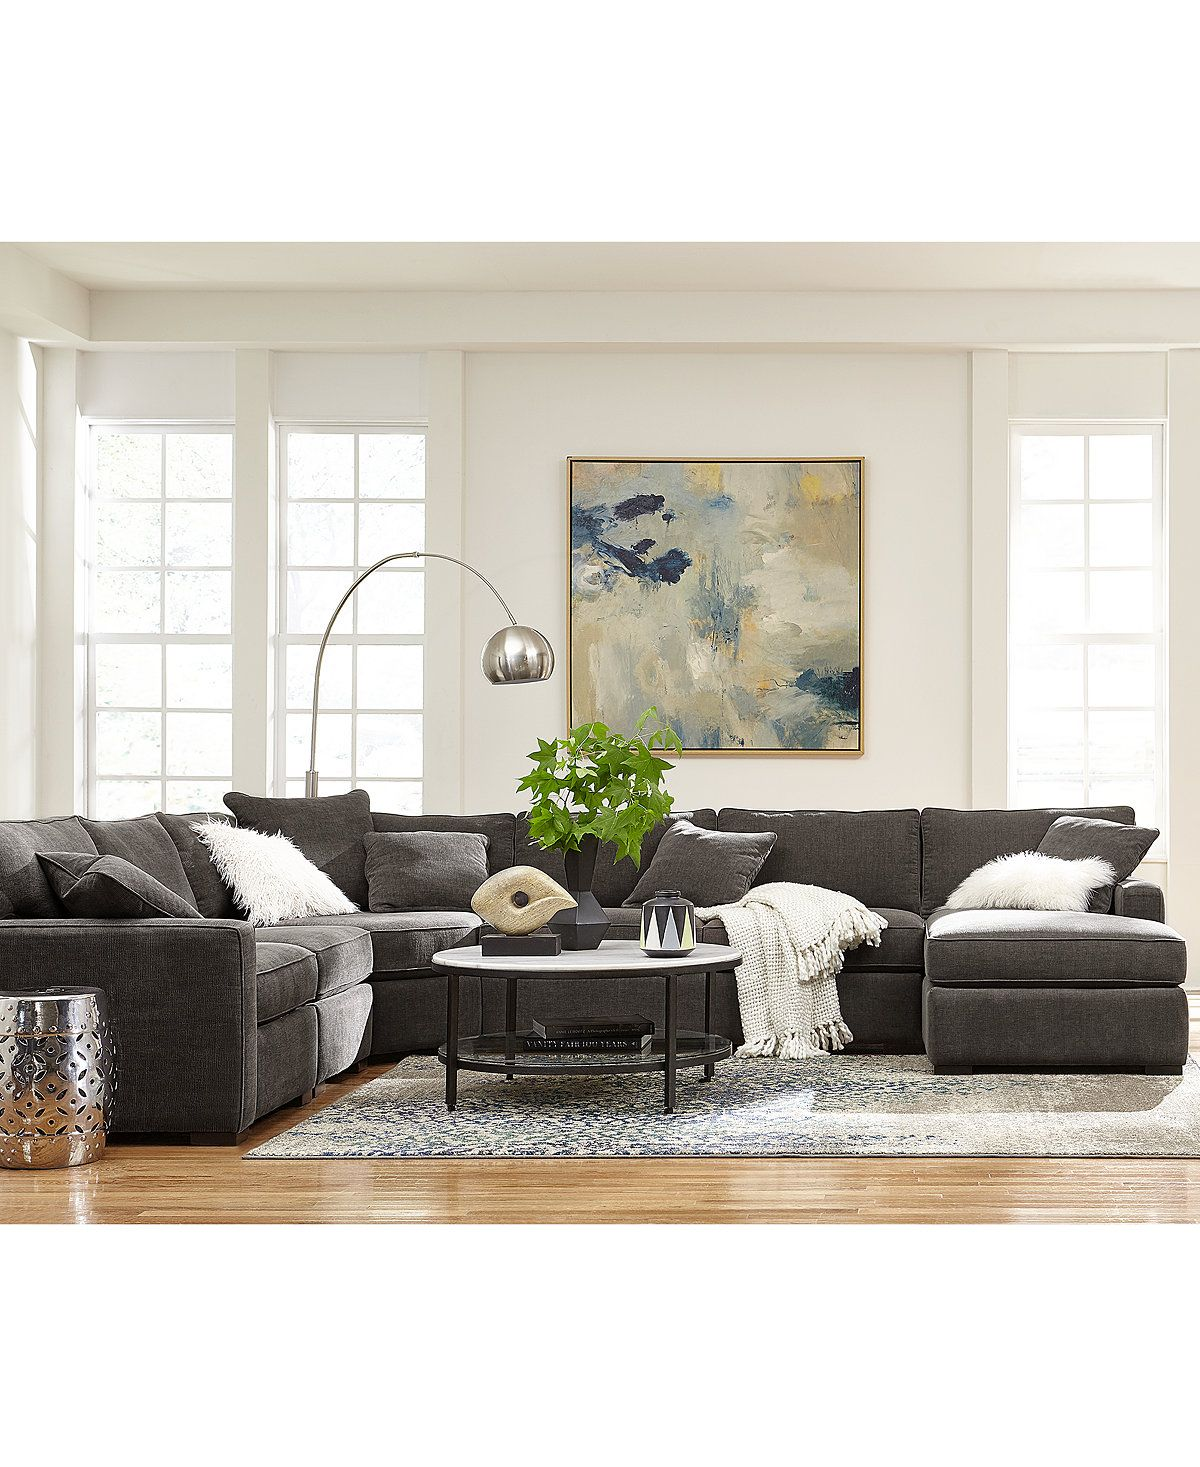 Radley 5Piece Fabric Chaise Sectional Sofa Created for Macys